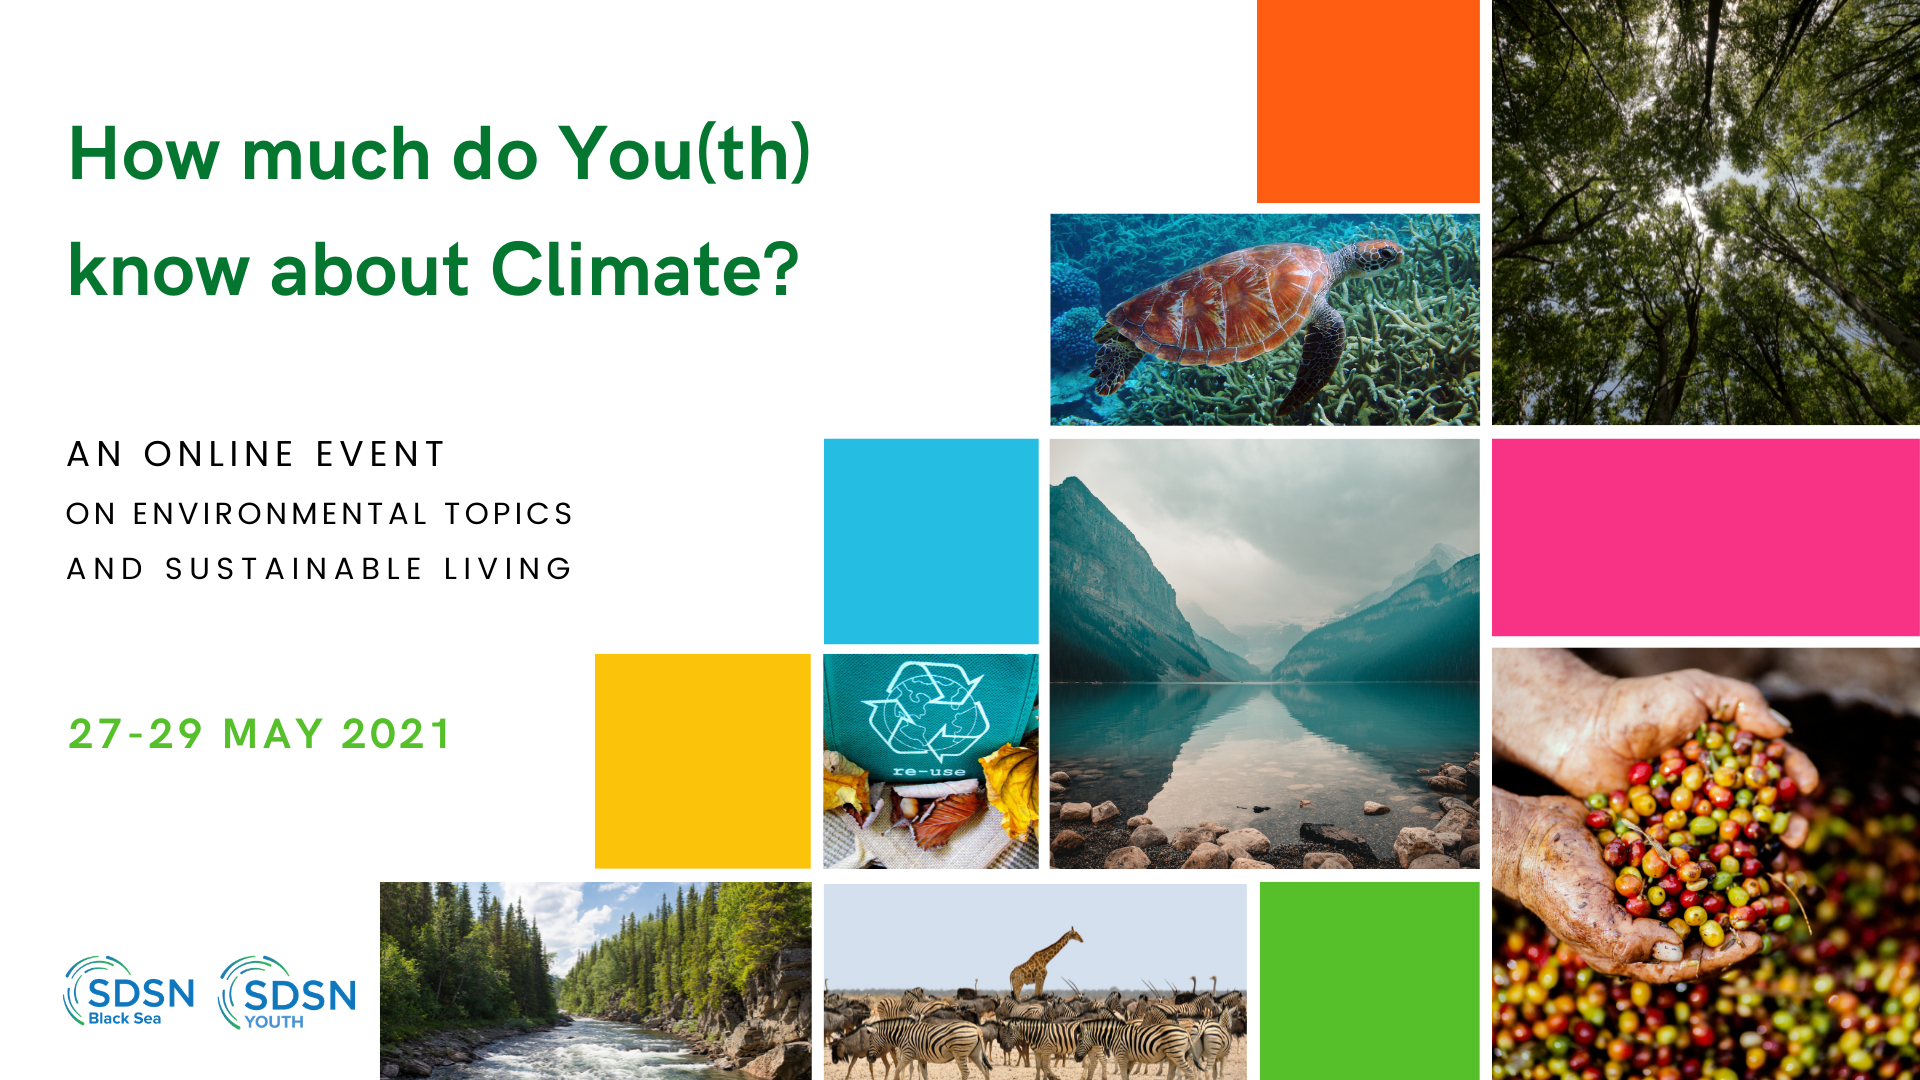 ASECU Youth is coorganizing an online event with SDSN Youth Black Sea and will highlight Climate Finance issue